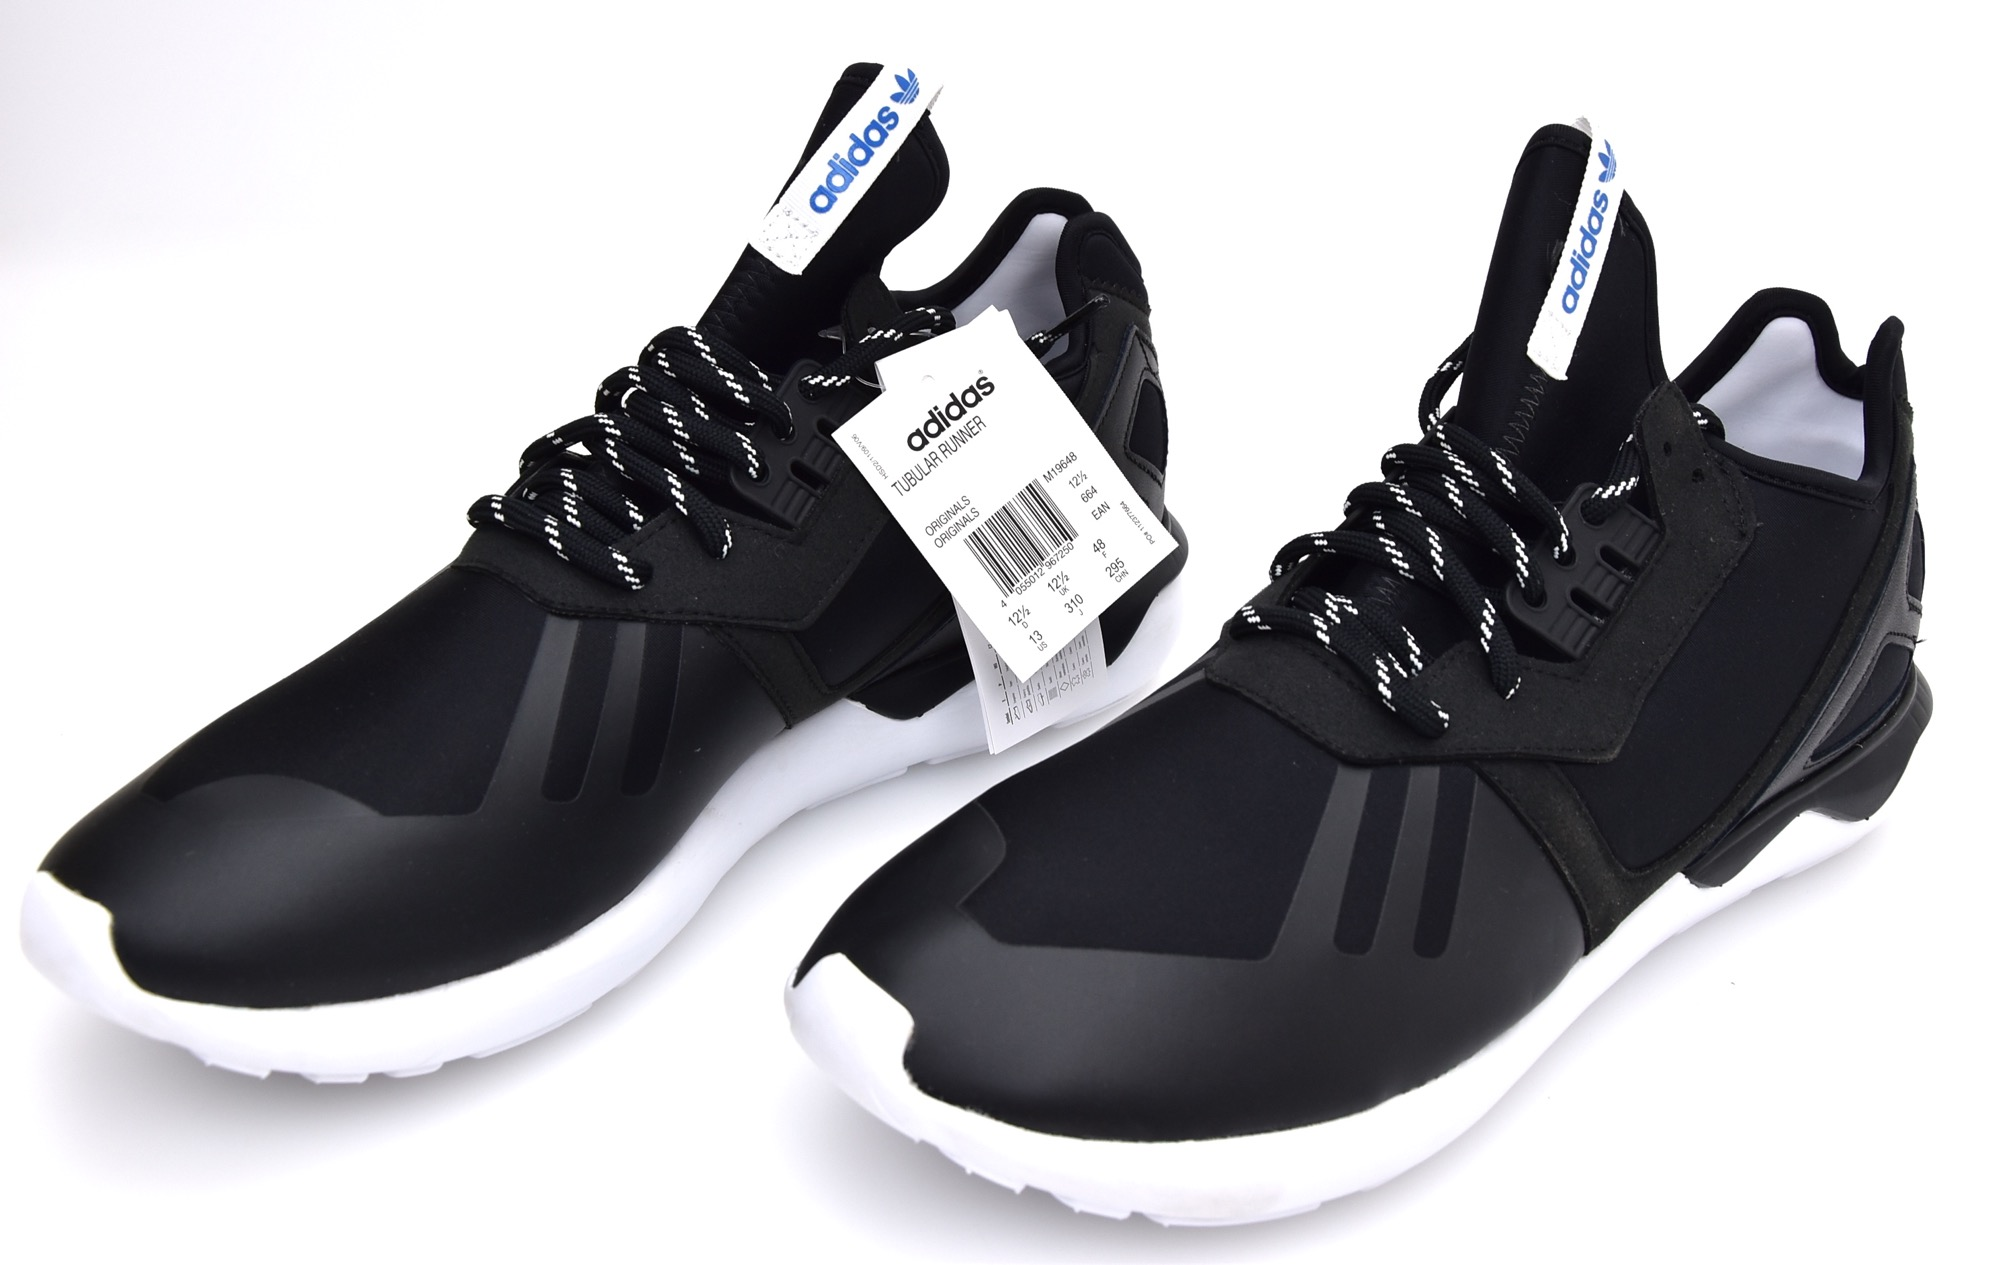 0e31cde55 Details about ADIDAS MAN SPORTS SNEAKER SHOES CASUAL FREE TIME CODE M19648 TUBULAR  RUNNER